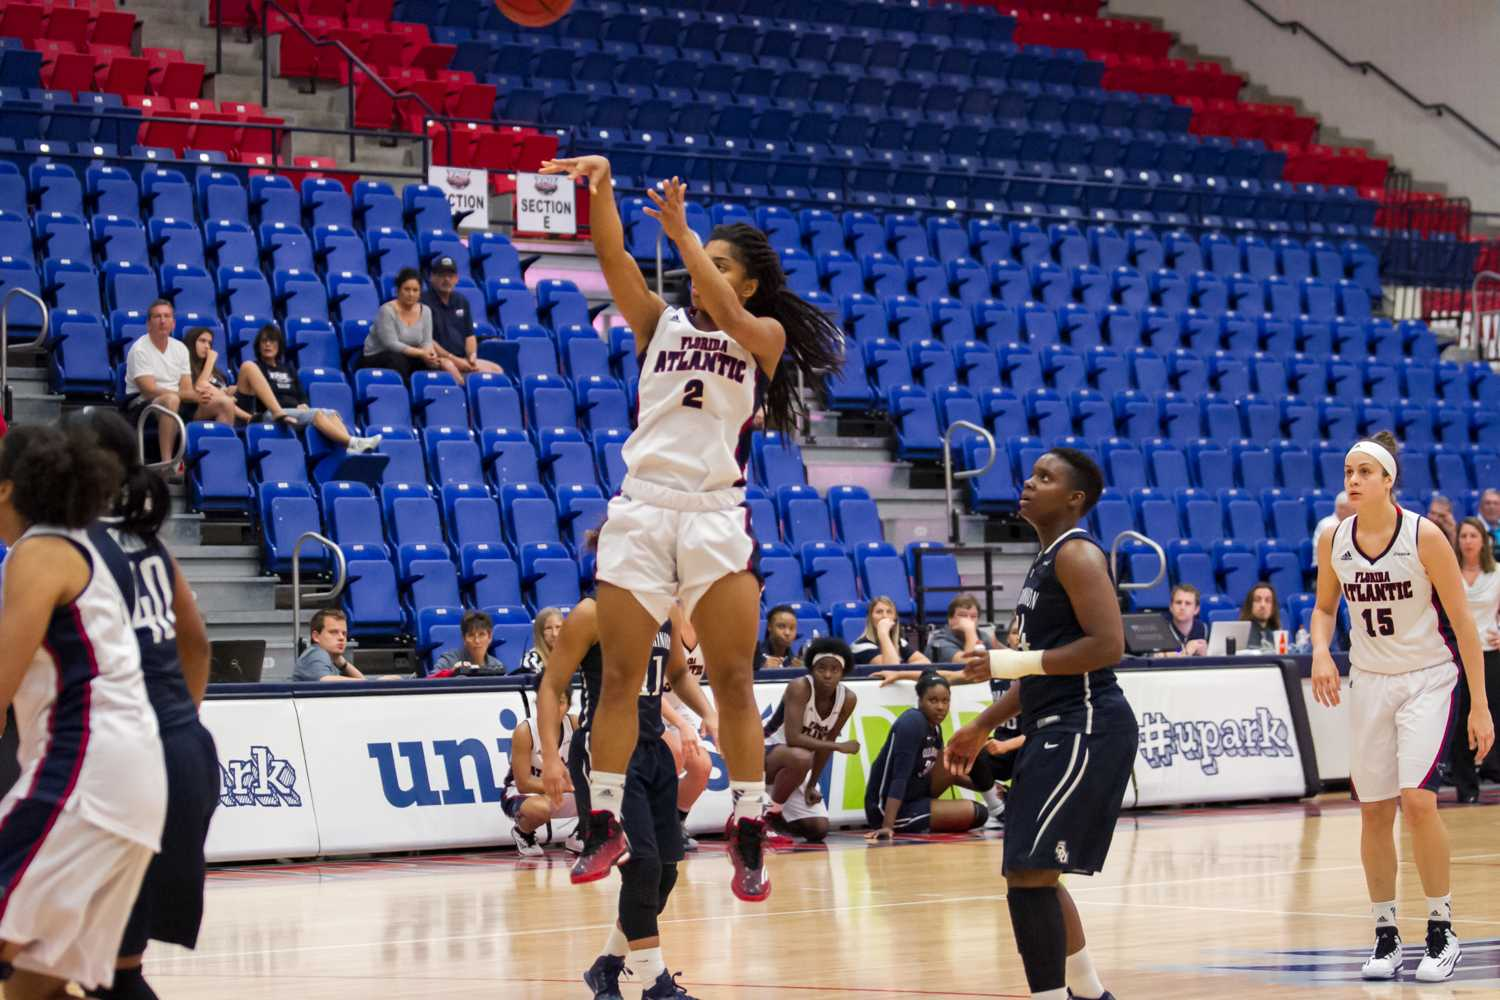 Bailey shoots a mid-range jump shot in the second half. She scored a total of 15 points in the loss to ODU on Jan. 31.